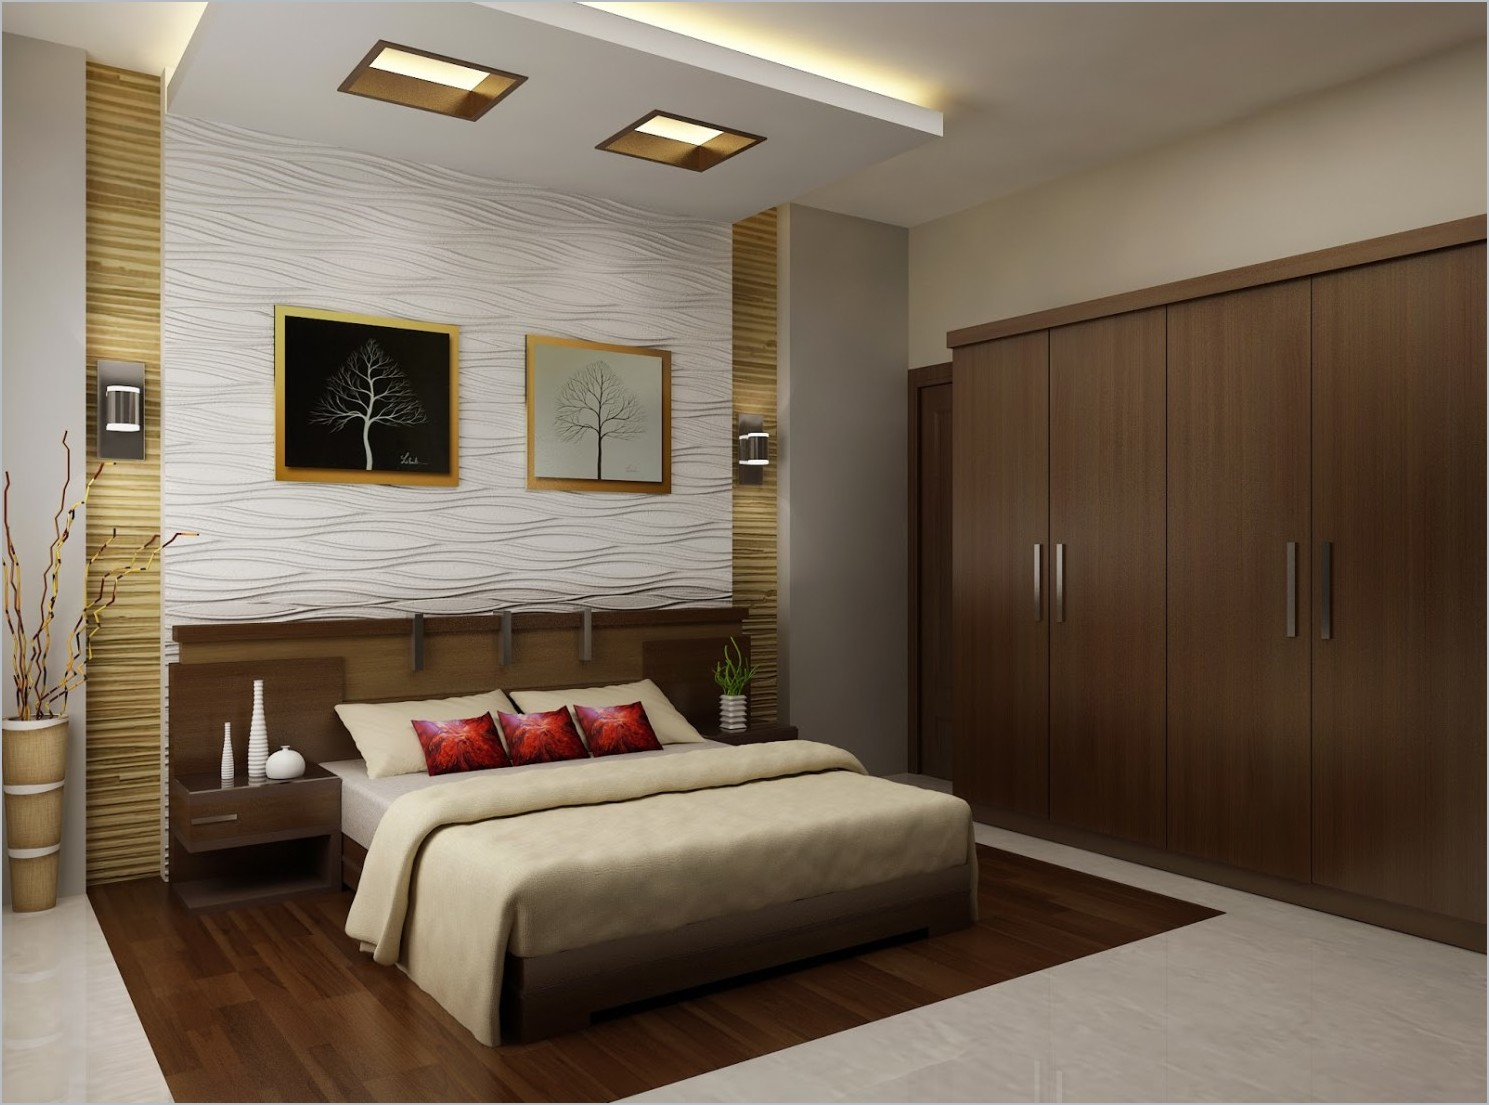 bedroom-designs-india-bedroom-design-kerala-style-good-home-interior-indian-furniture-of-owning-a-become-just-that-dream